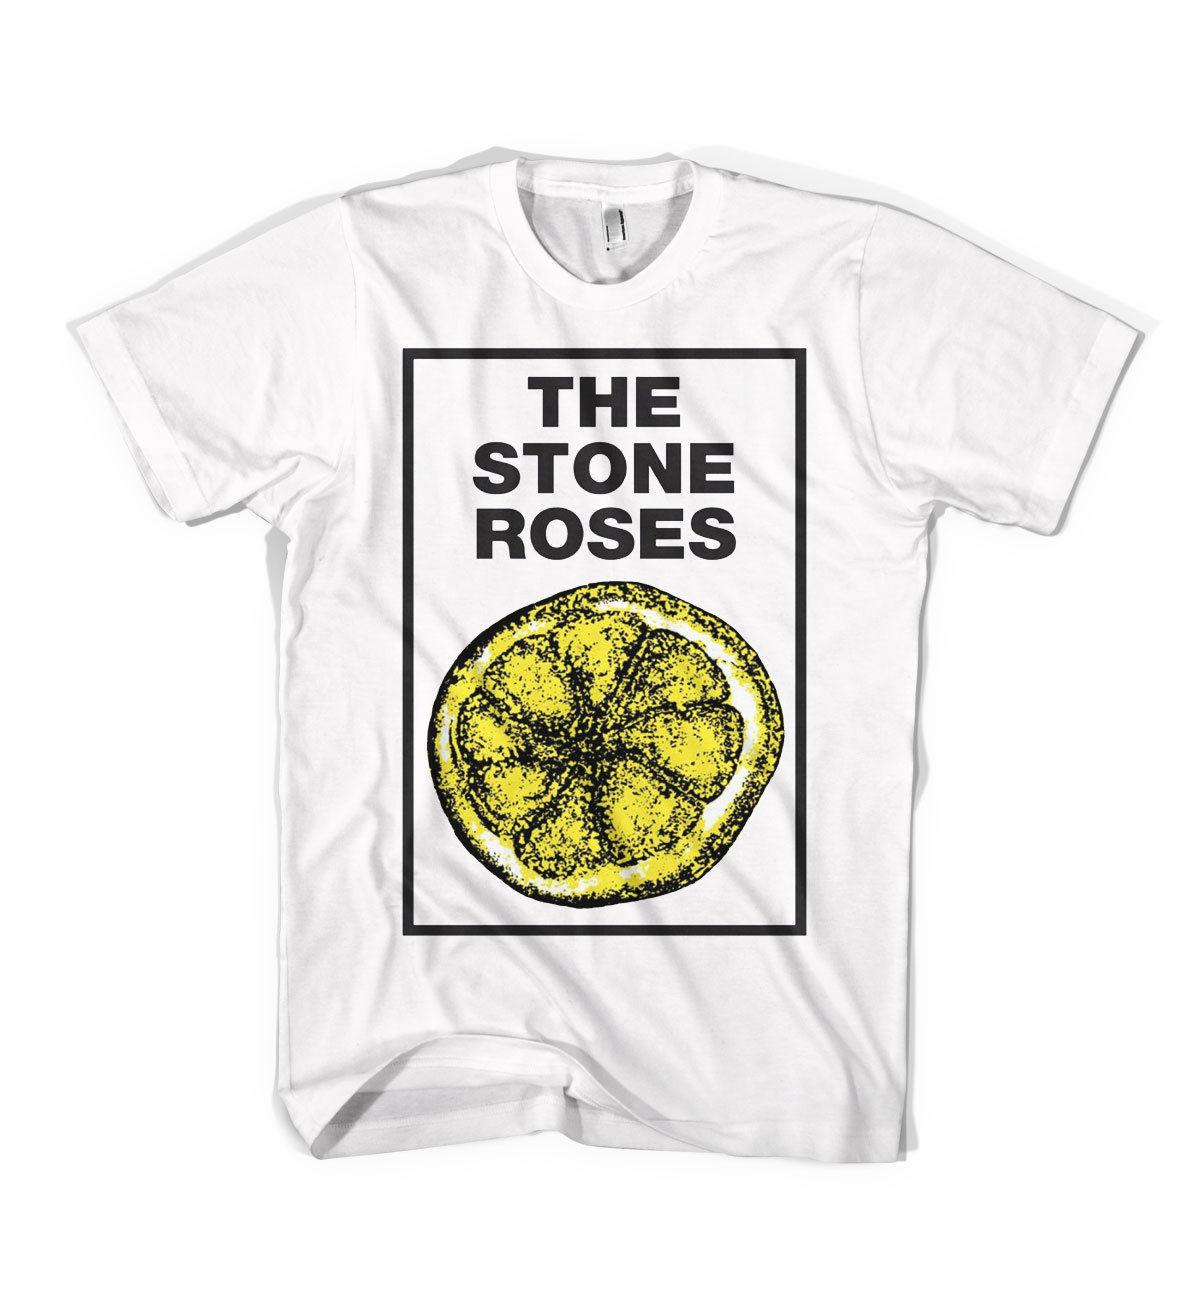 1bcaedc6ebd8 New Retro The Stone Roses Lemon Unisex T Shirt All Sizes WHITE ColoursFunny  Unisex Casual Tshirt Top Offensive T Shirt T Shirt Slogan From Pepitaprint